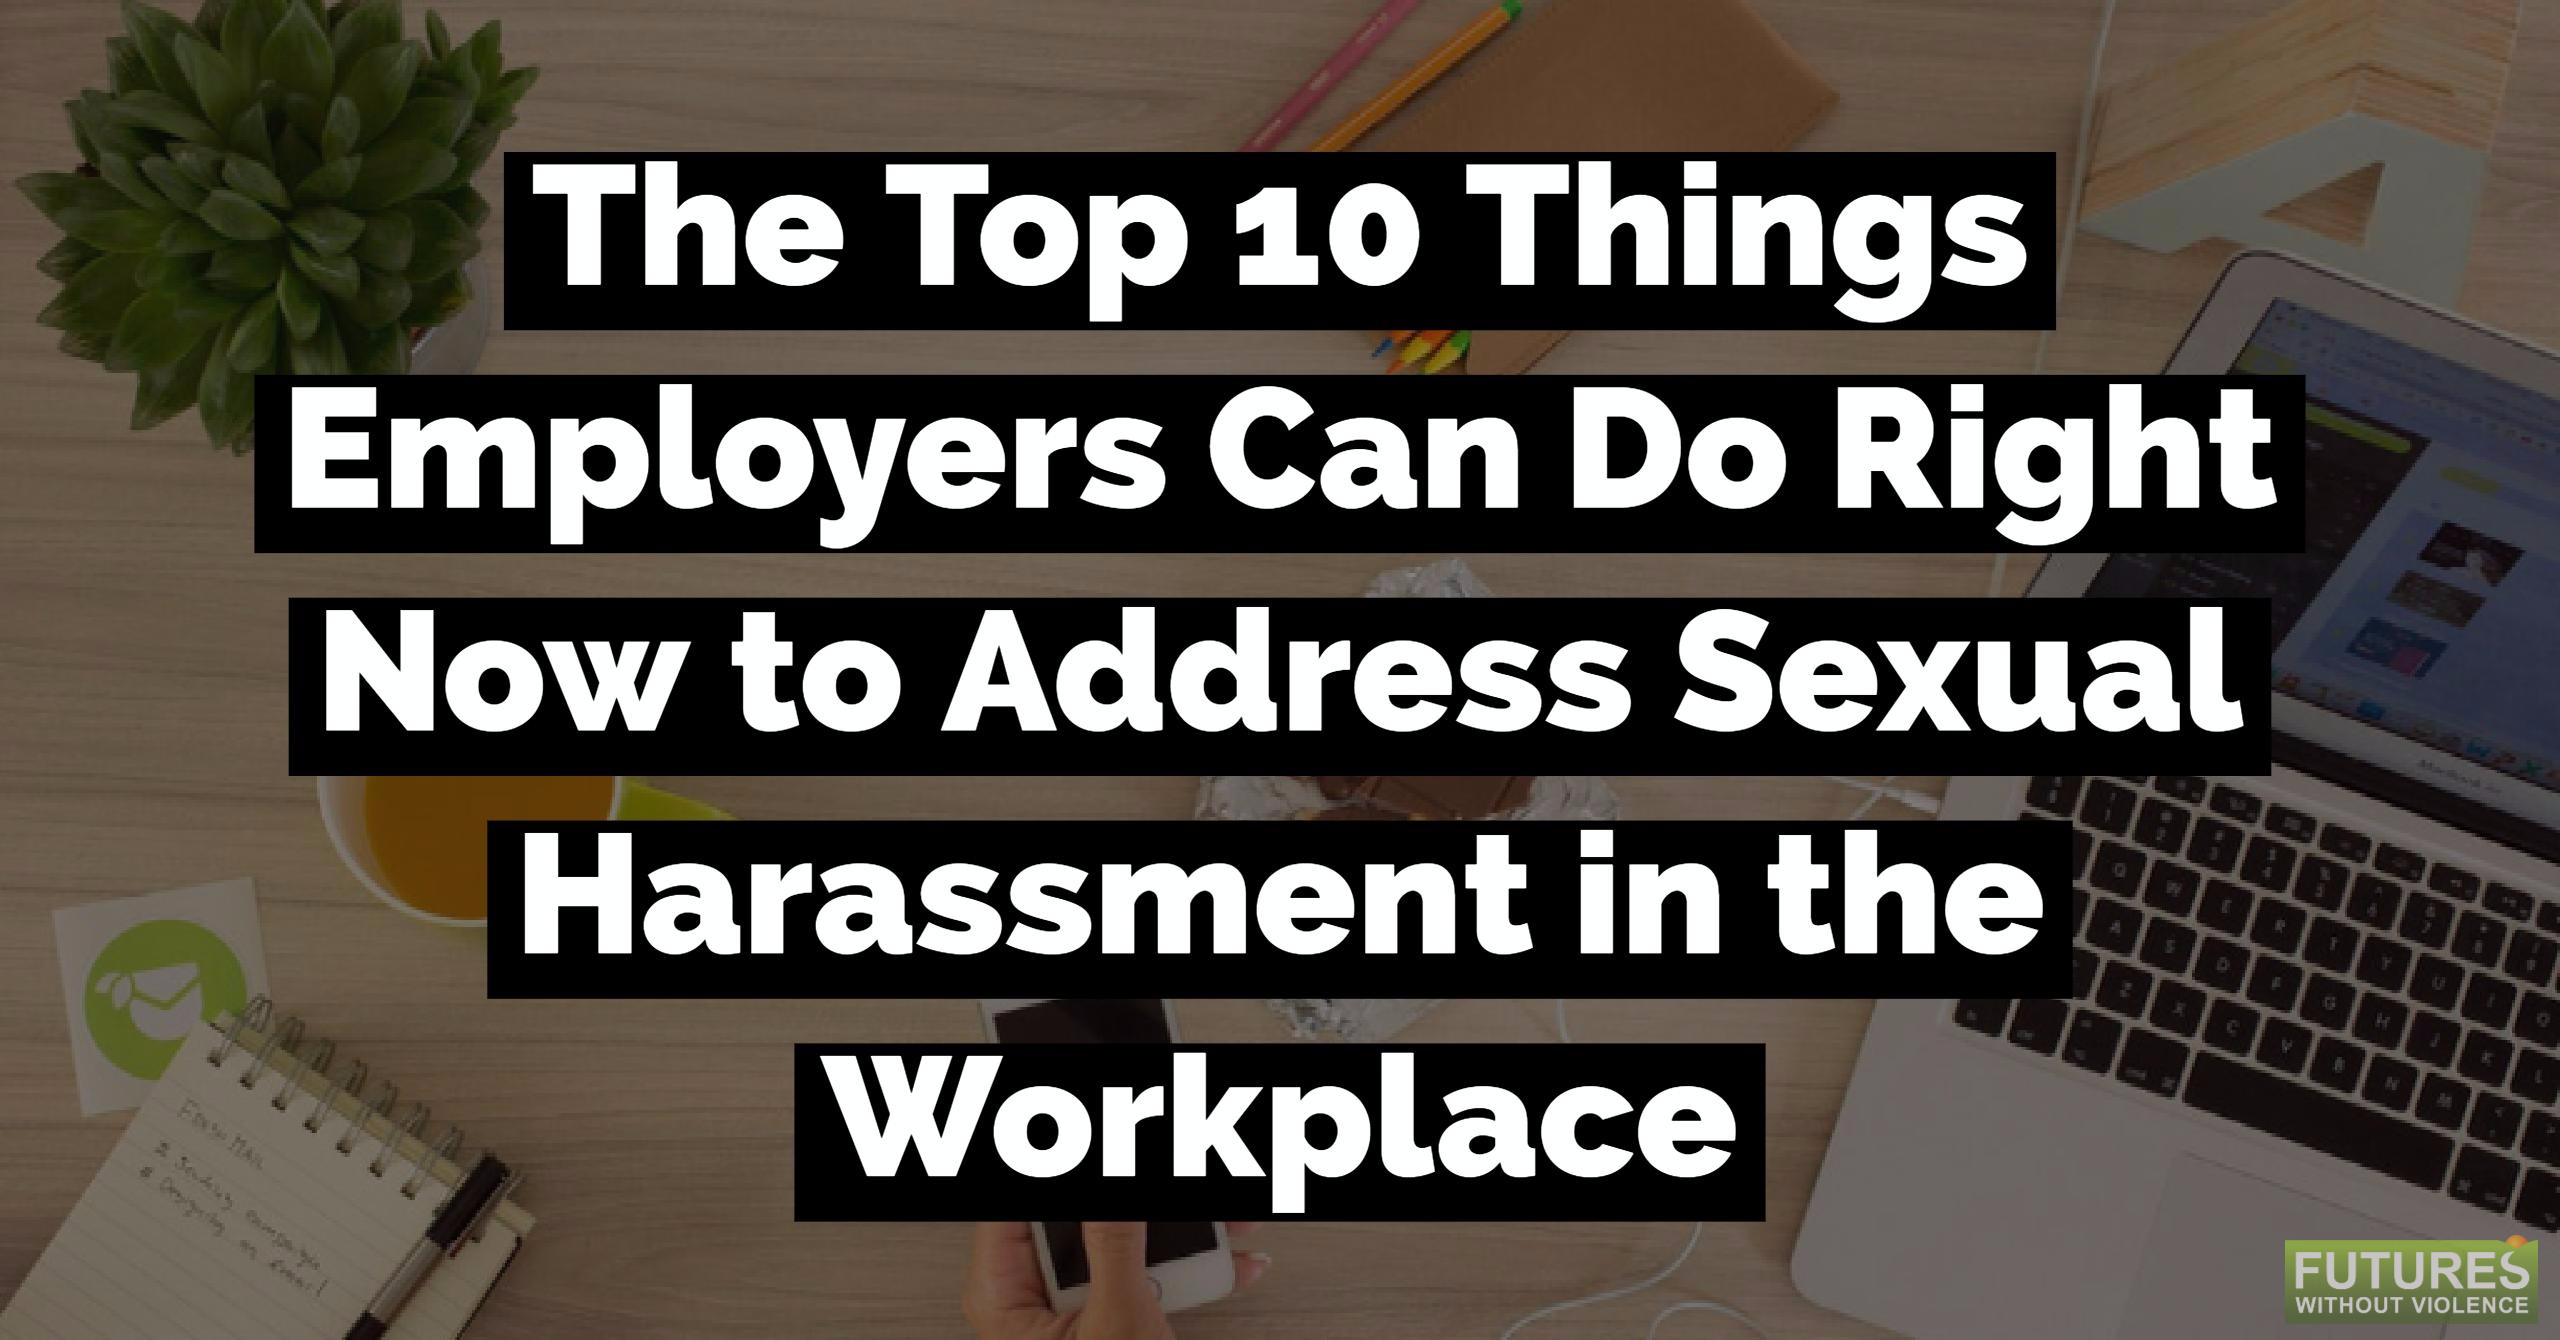 Sexual harassment in the workplace training materials